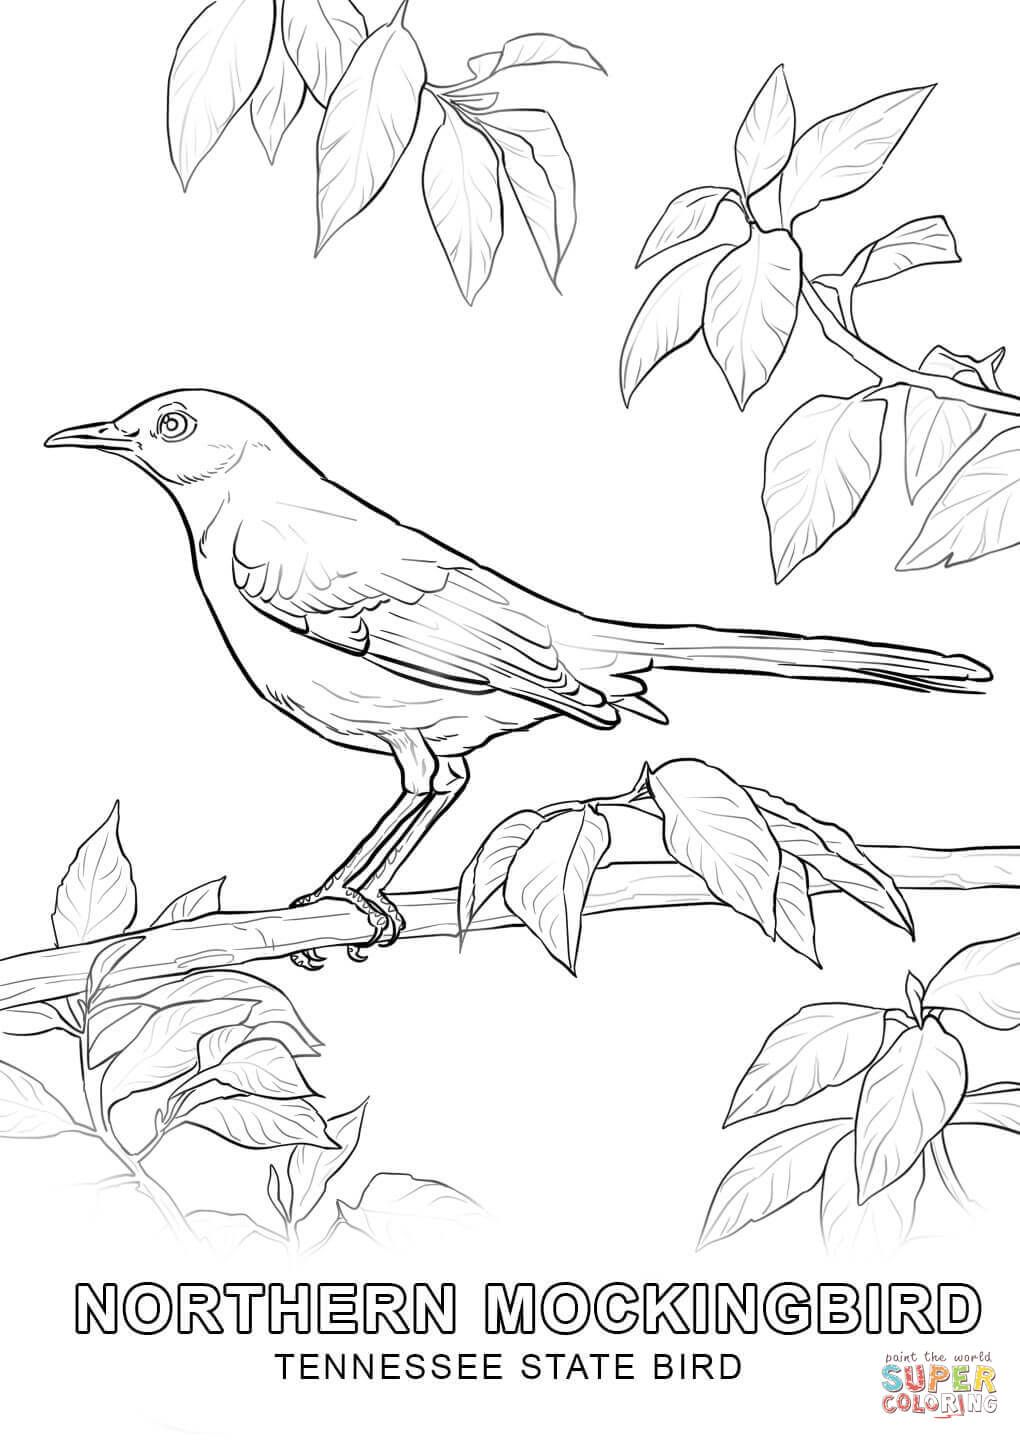 tennessee state bird coloring pagejpg 10201440